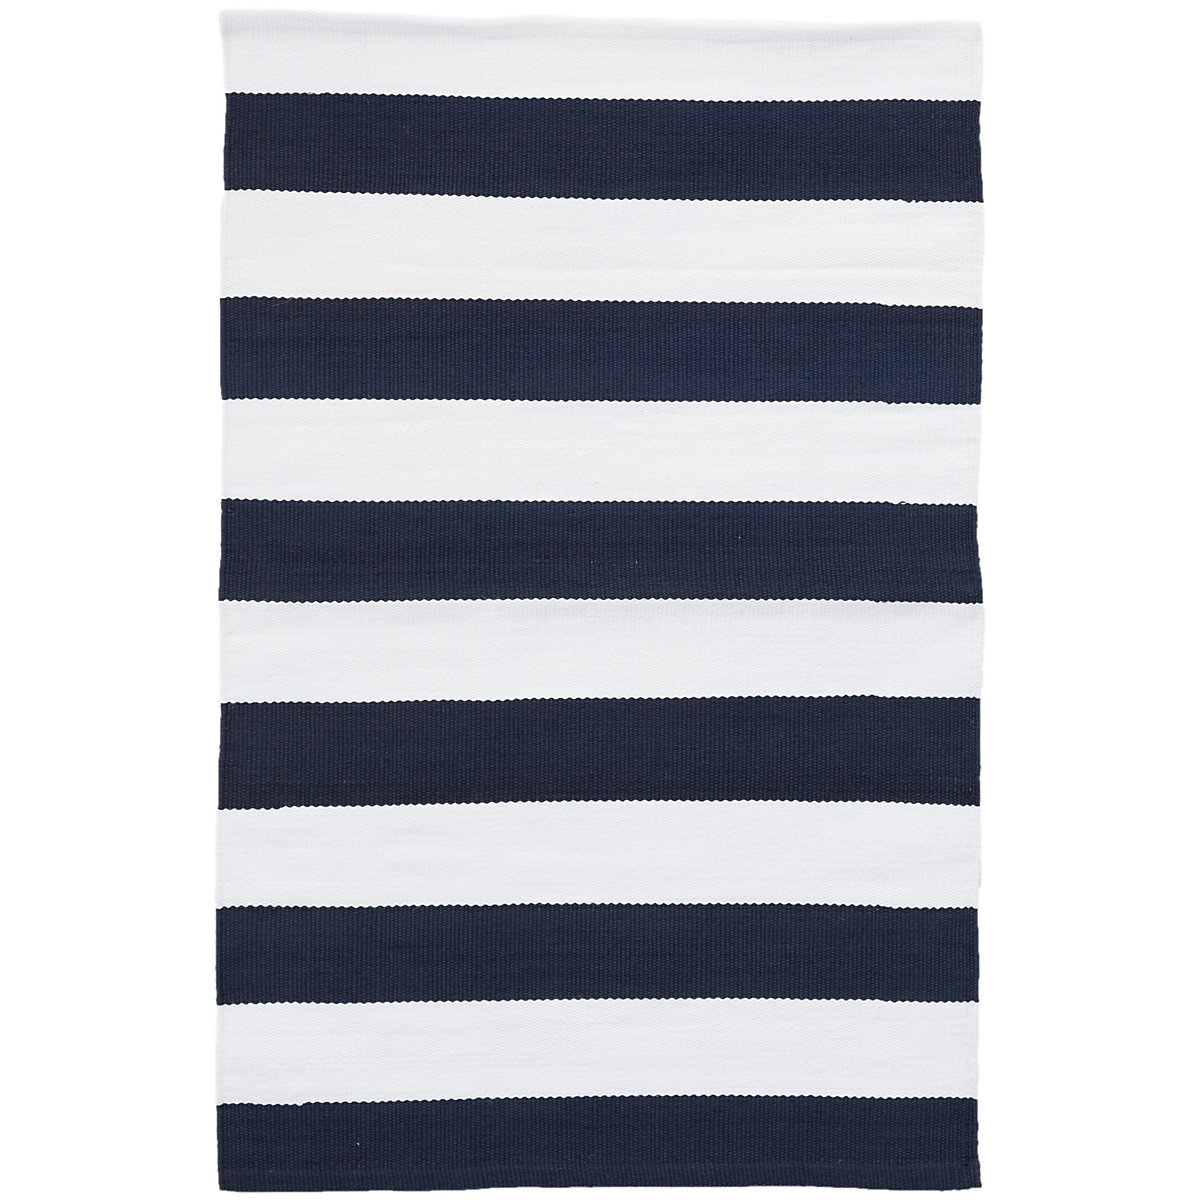 Catamaran Stripe Navy White Indoor Outdoor Rug 5x8